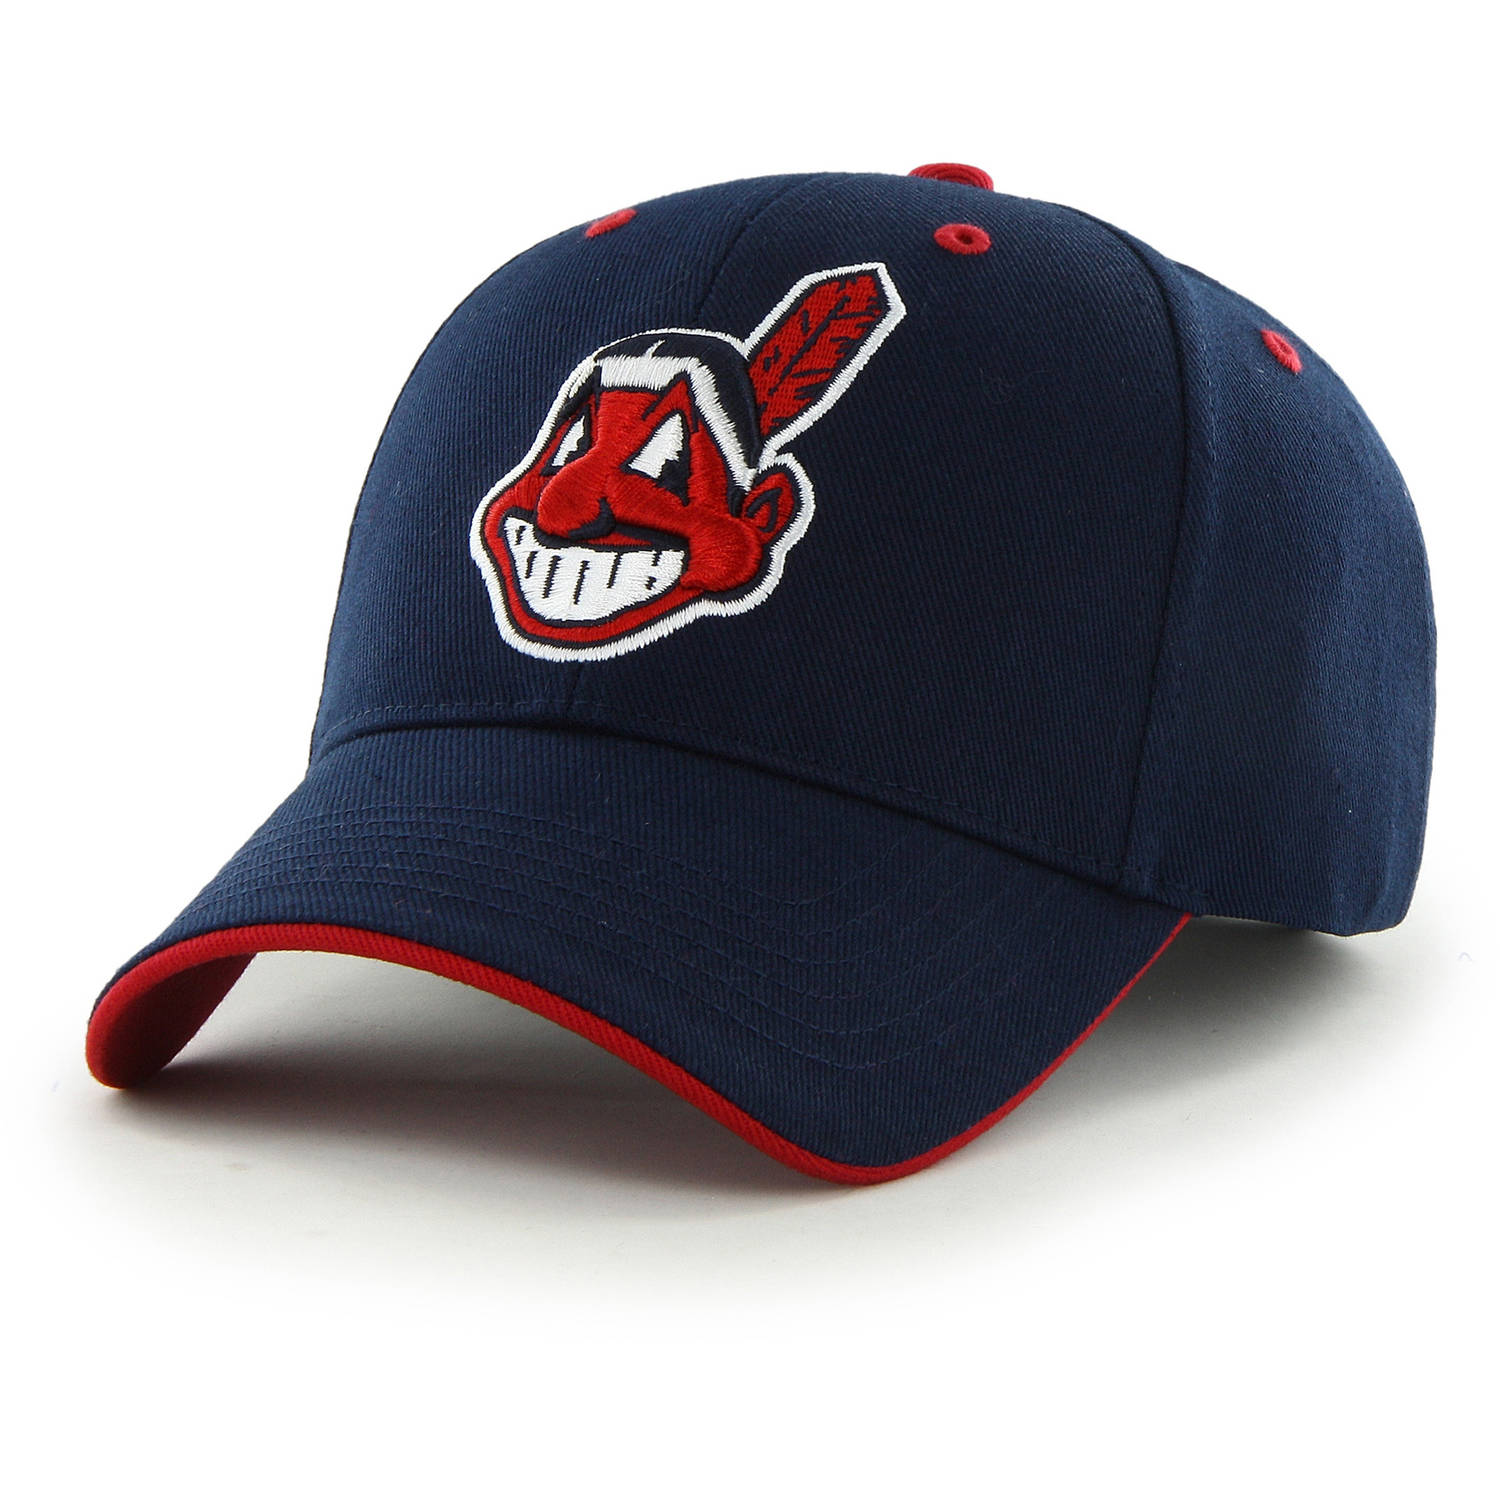 MLB Cleveland Indians Mass Money Maker Cap - Fan Favorite